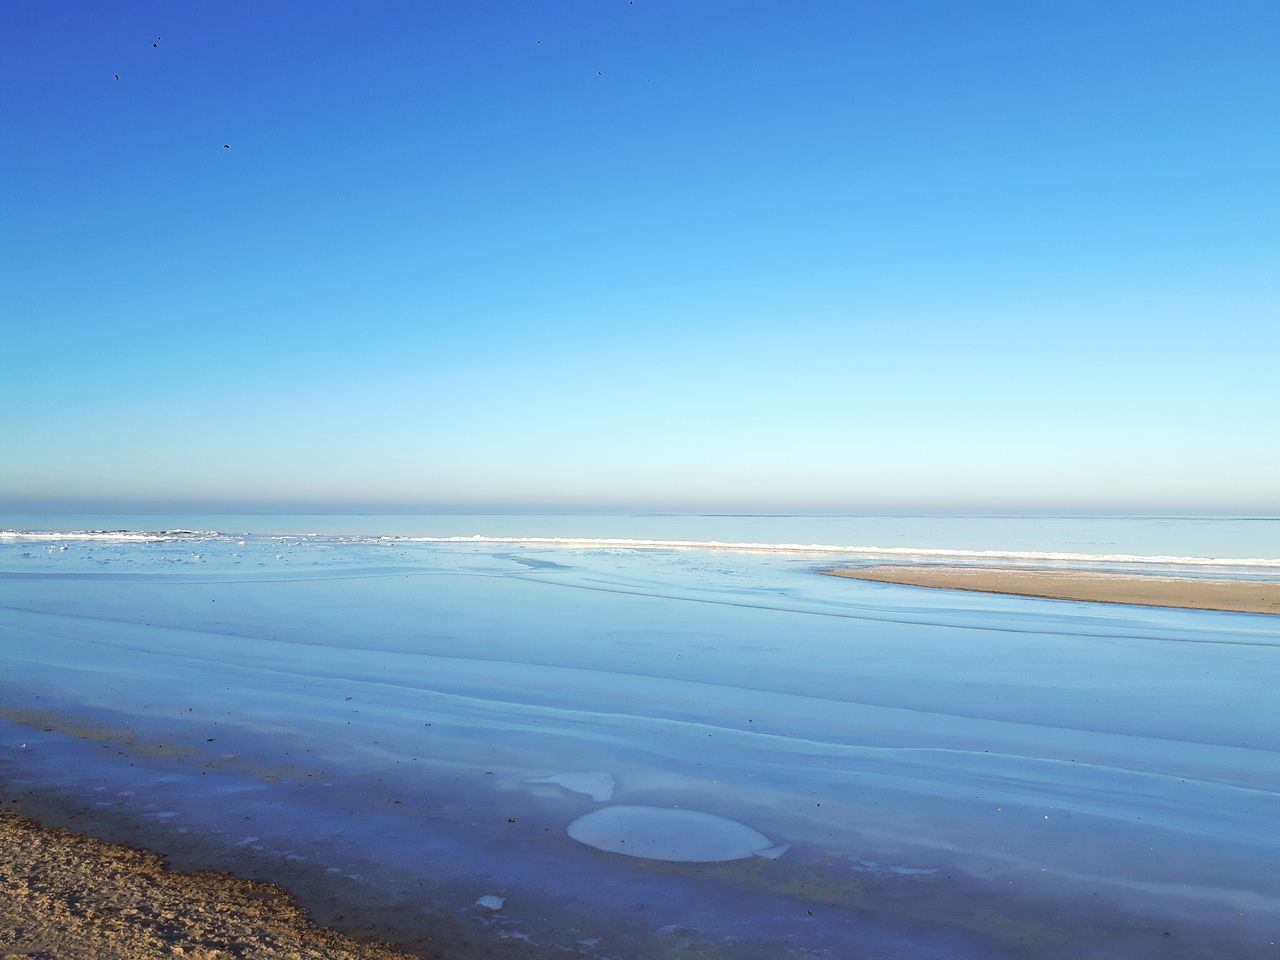 Frozen Baltic sea 💎🌬❄🌊 Horizon Over Water Beach Sky Garciems Beauty In Nature No People Nature Water Sea Baltic Sea February10th Cold Winter ❄⛄ Freshness Frozen Water Frosty Mornings Frost Clear Sky Ice Crystal Ice Travelphotography Latvia